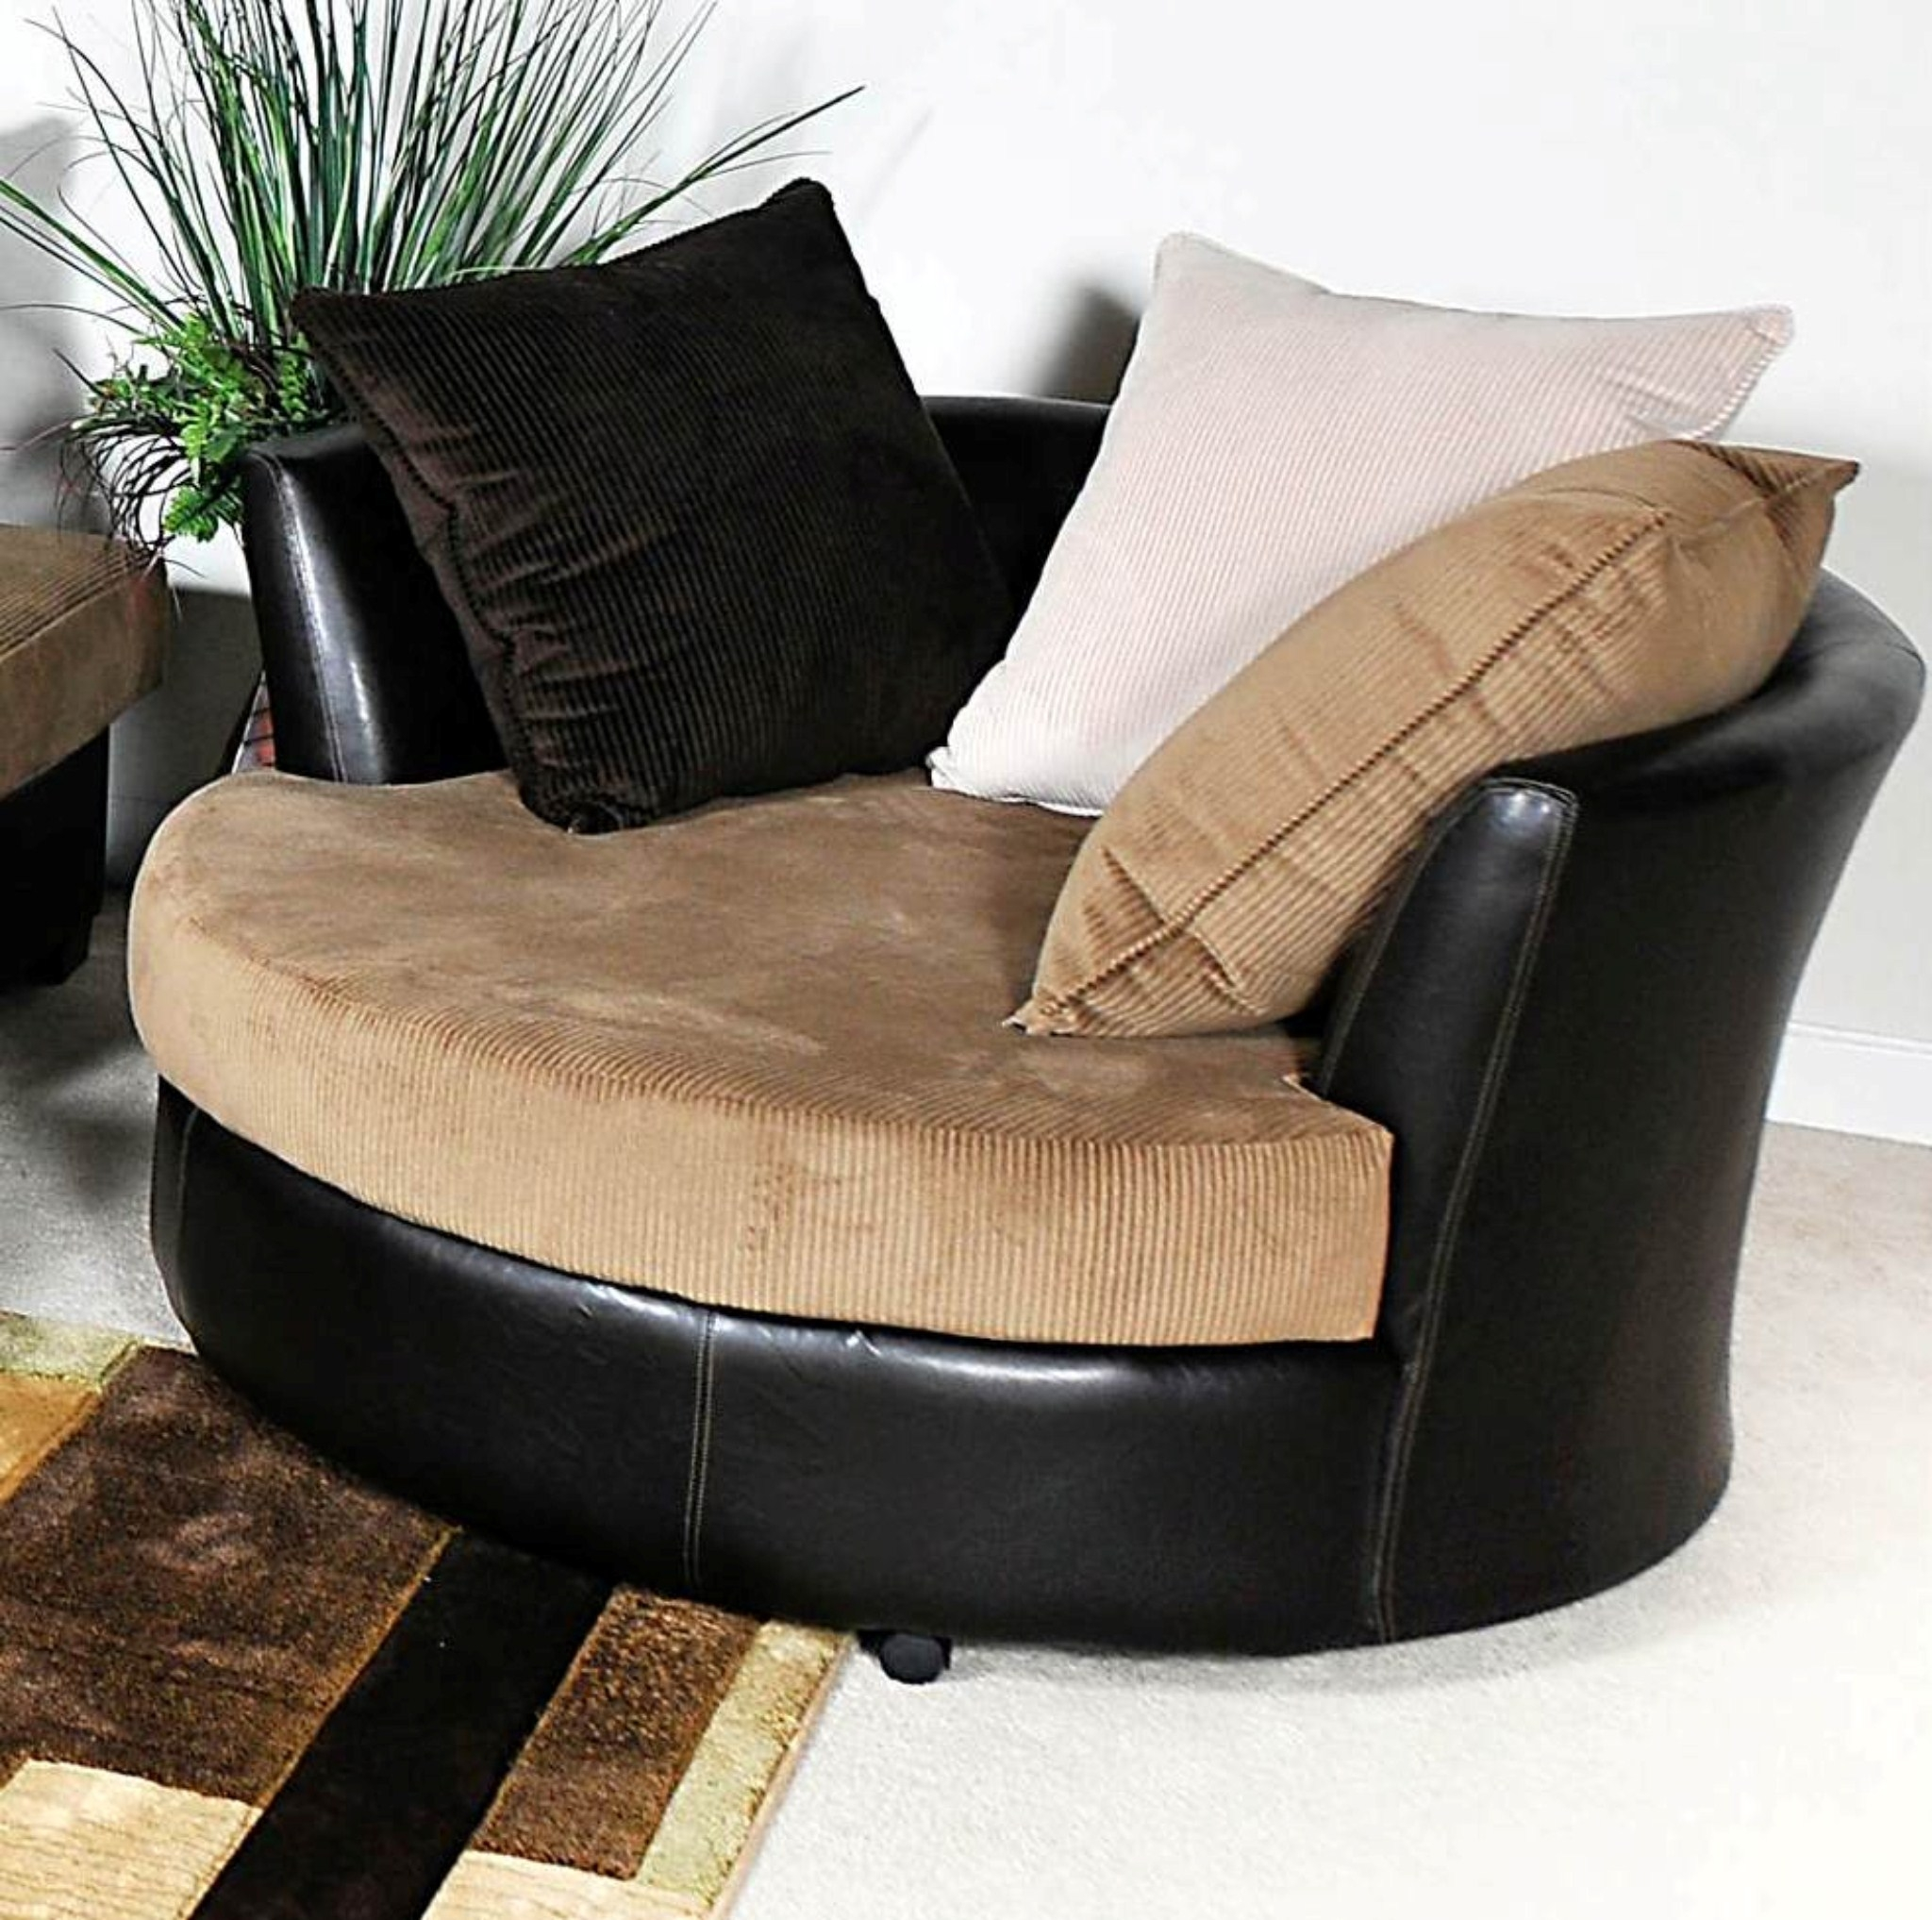 Oversized Circle Chair 15 Ideas Of Round Swivel Sofa Chairs Sofa Ideas